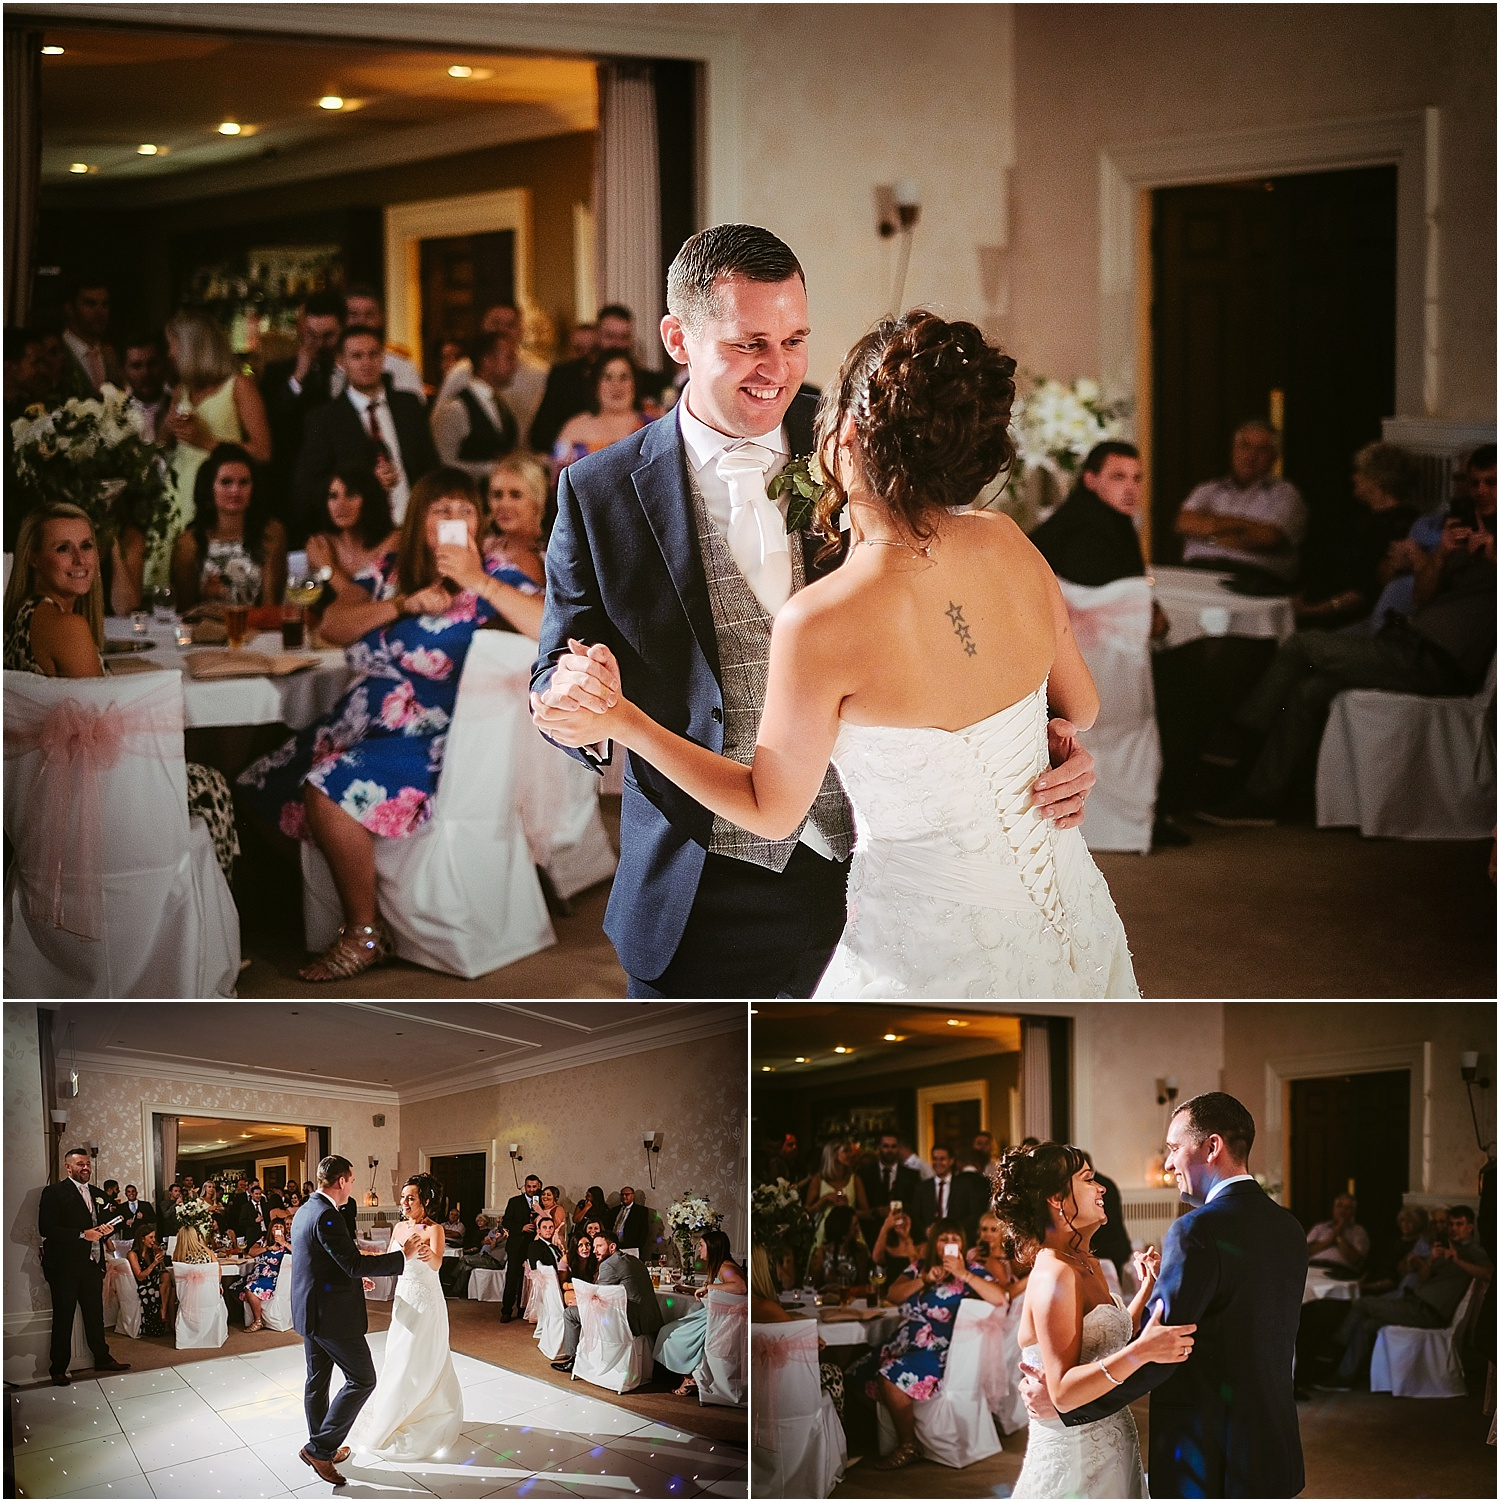 Wedding at Seaham Hall - wedding photography by www.2tonephotography.co.uk 077.jpg